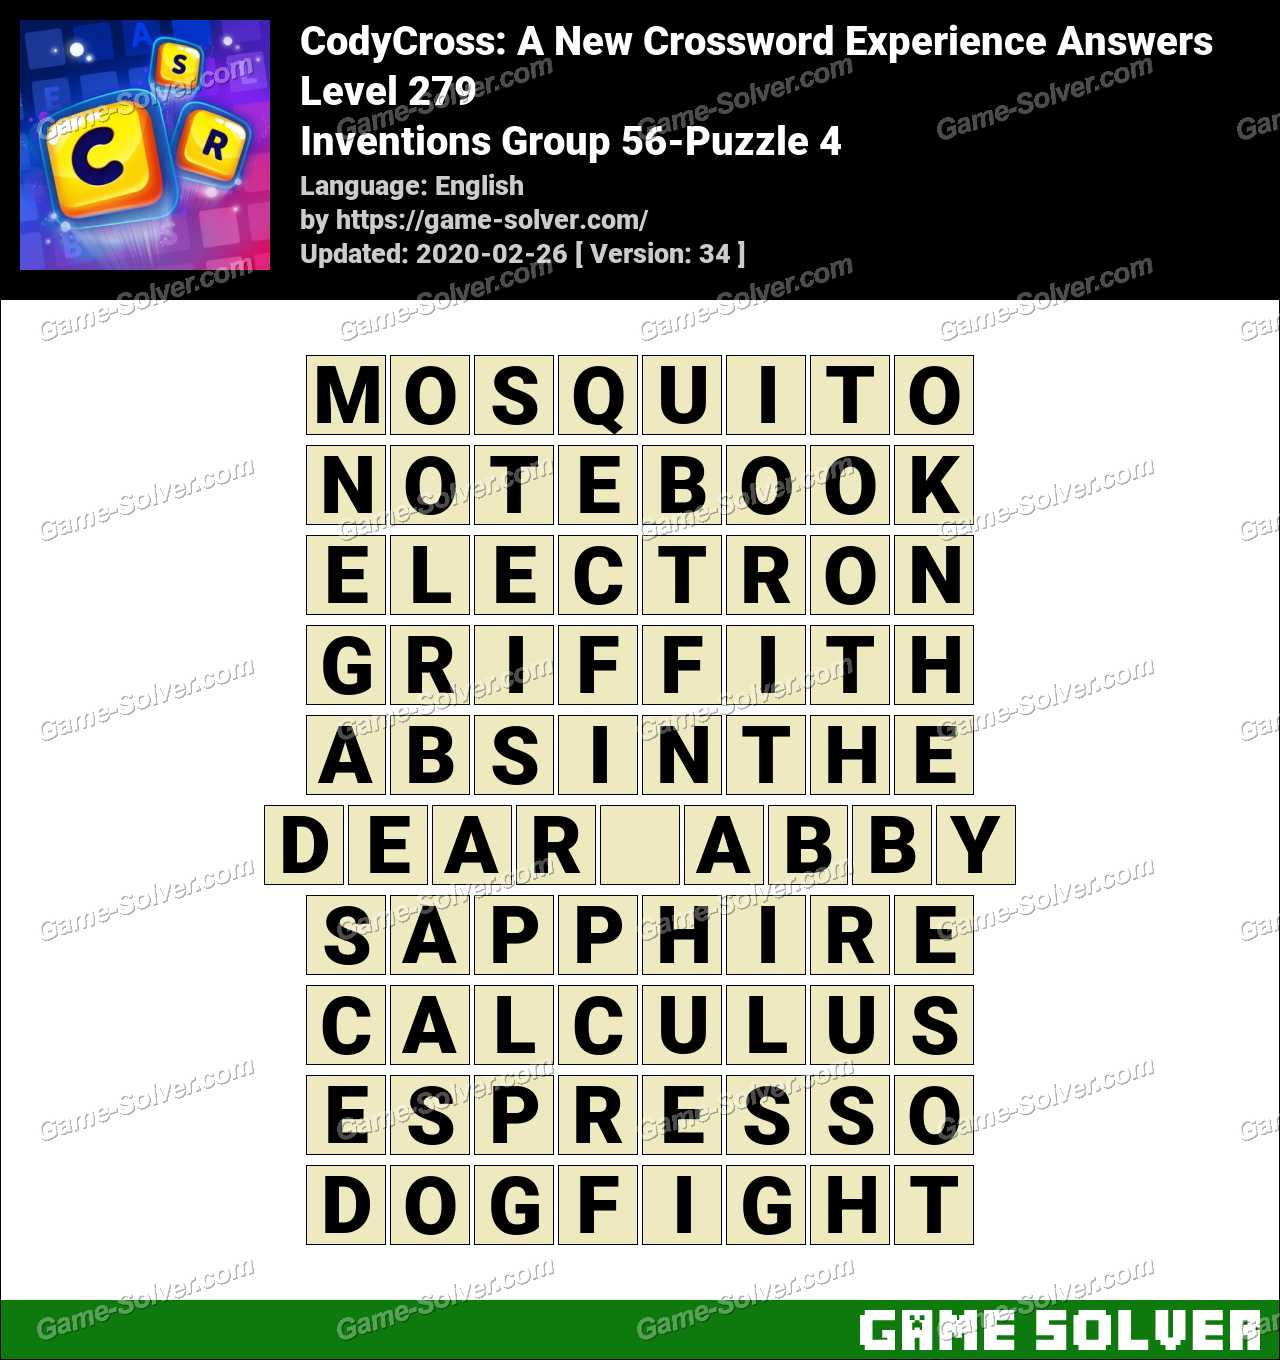 CodyCross Inventions Group 56-Puzzle 4 Answers